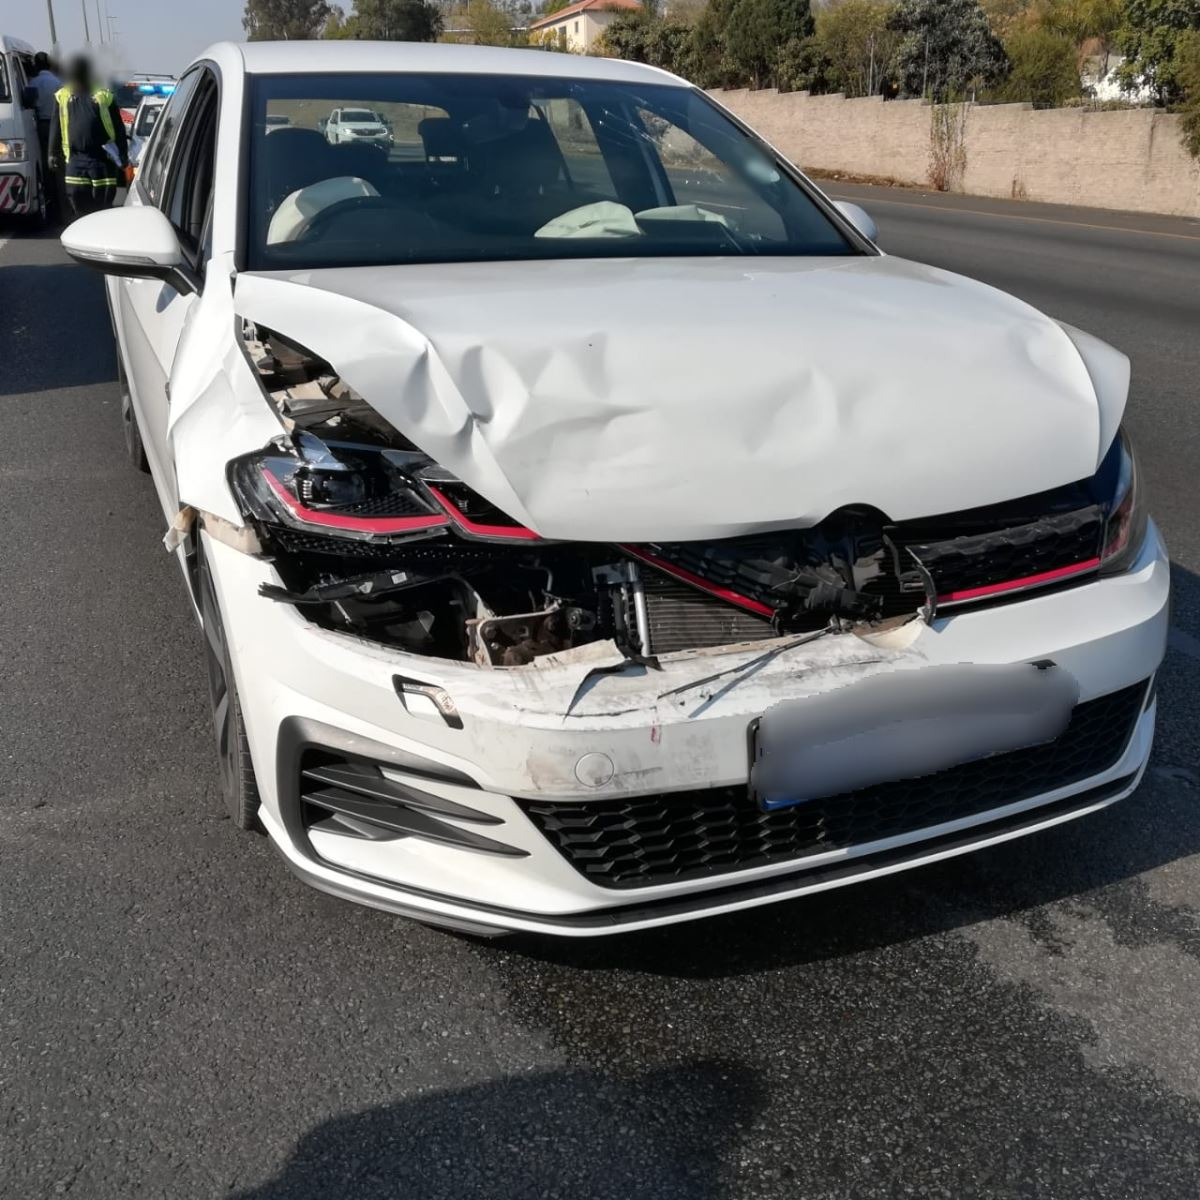 Gauteng: Fortunately no injuries reported on N1 crash in